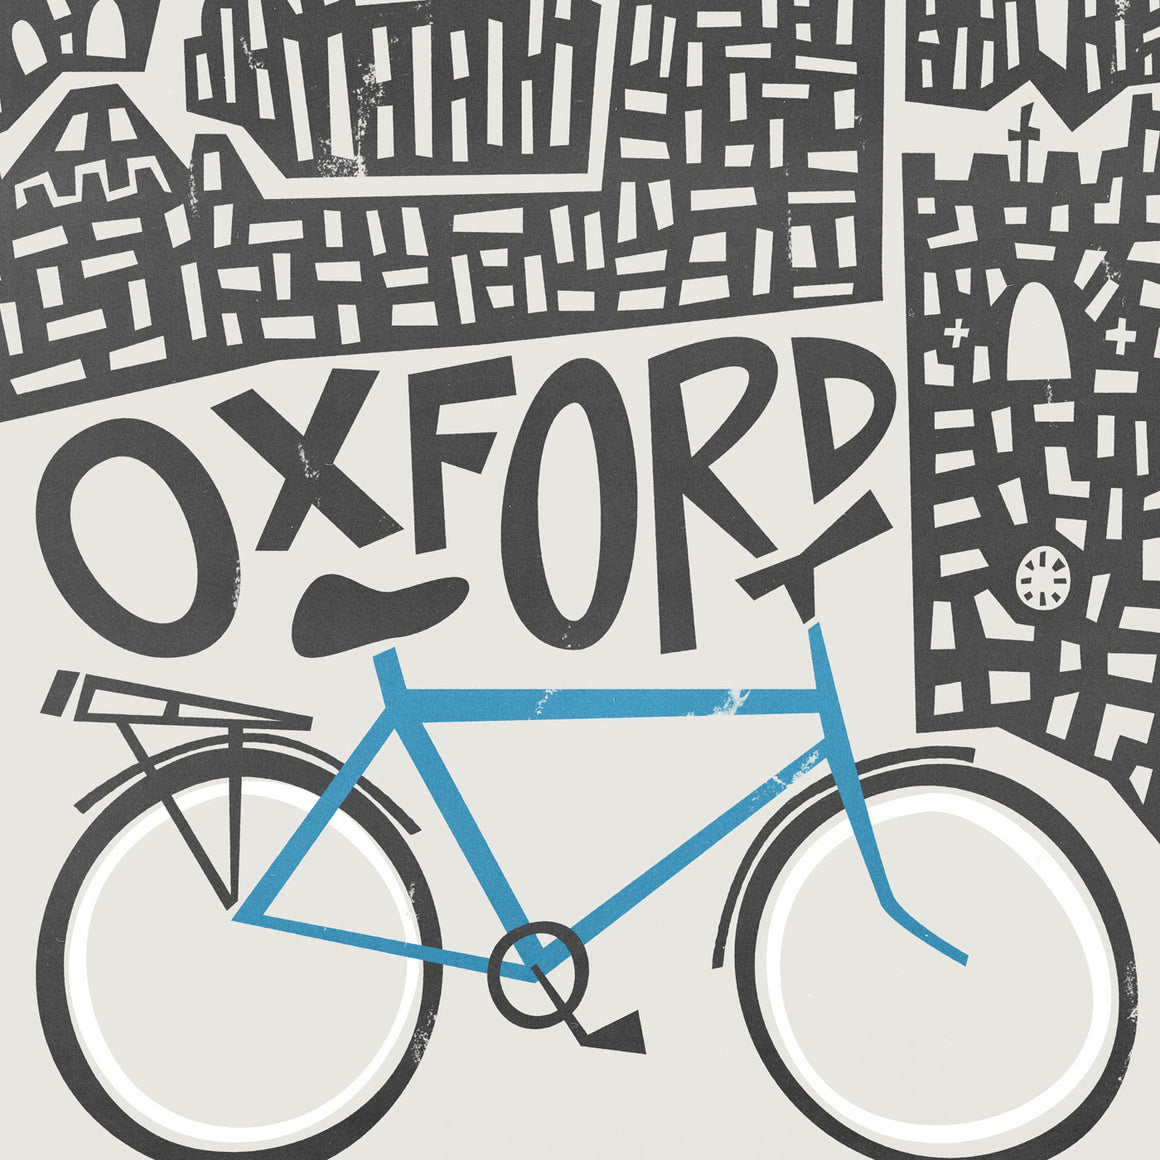 Oxford City Card